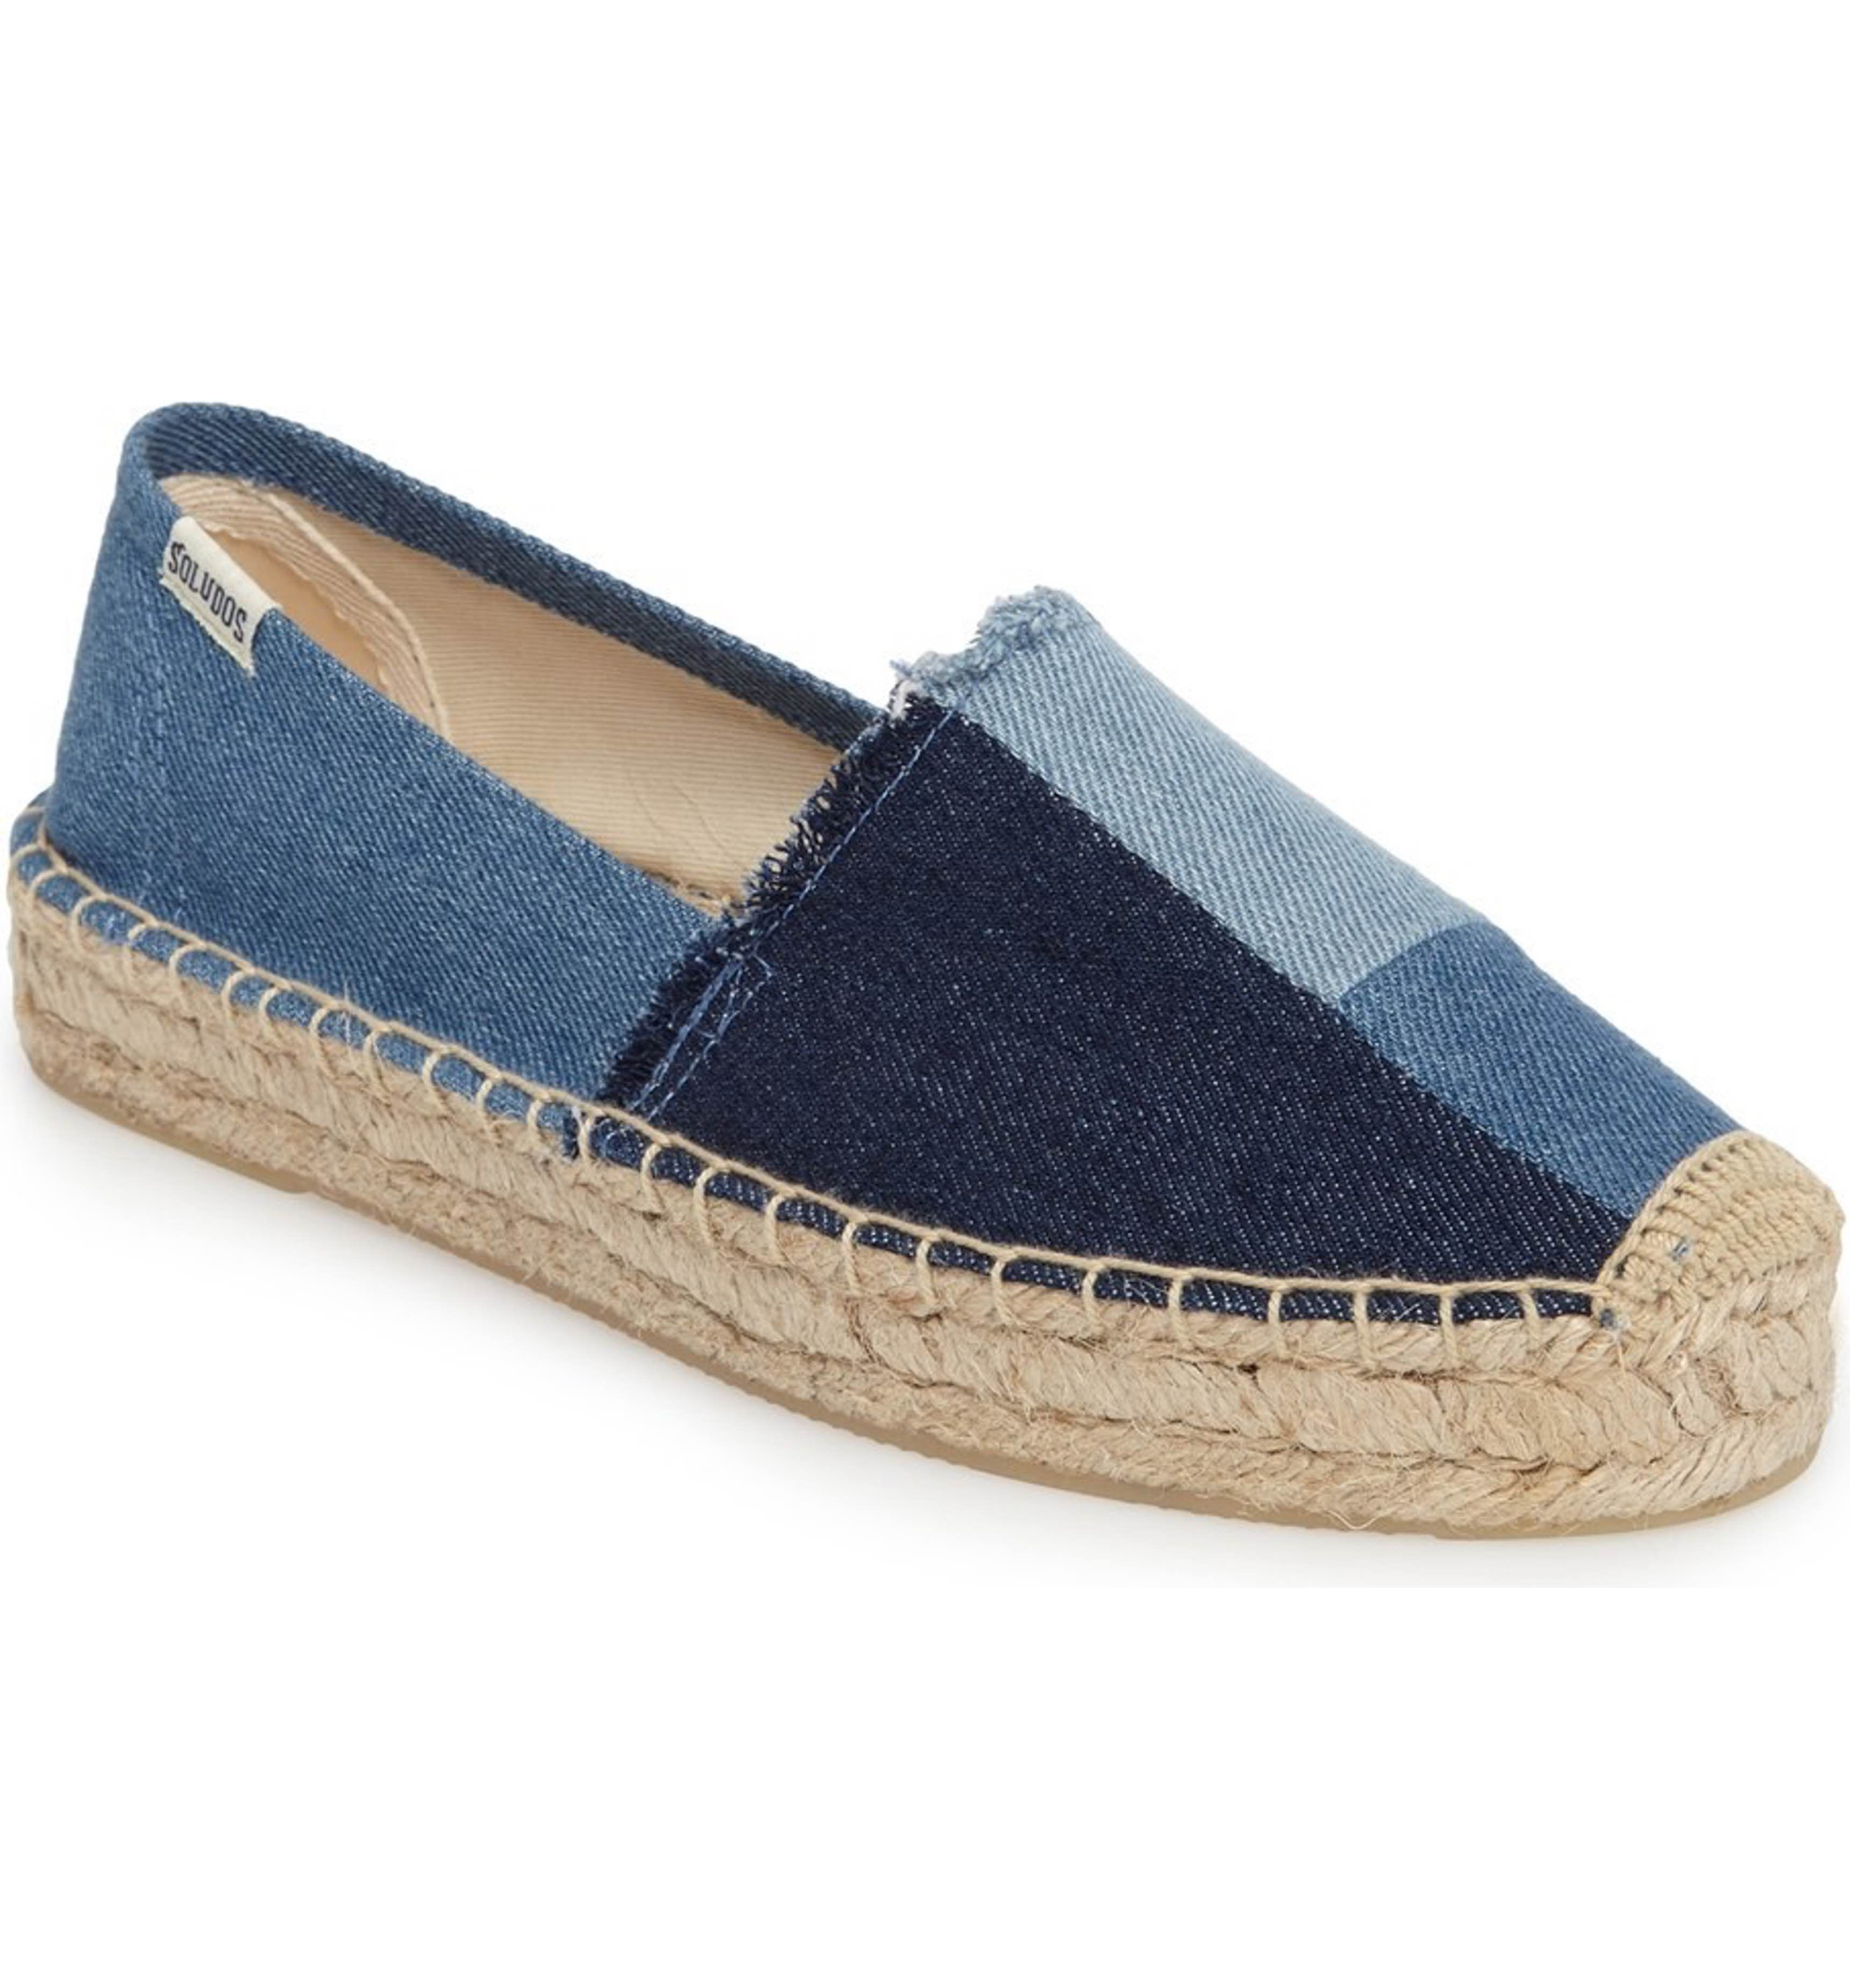 Soludos Patchwork Platform Espadrille - Patchwork denim infuses a 70's  bohemian vibe into a classic,